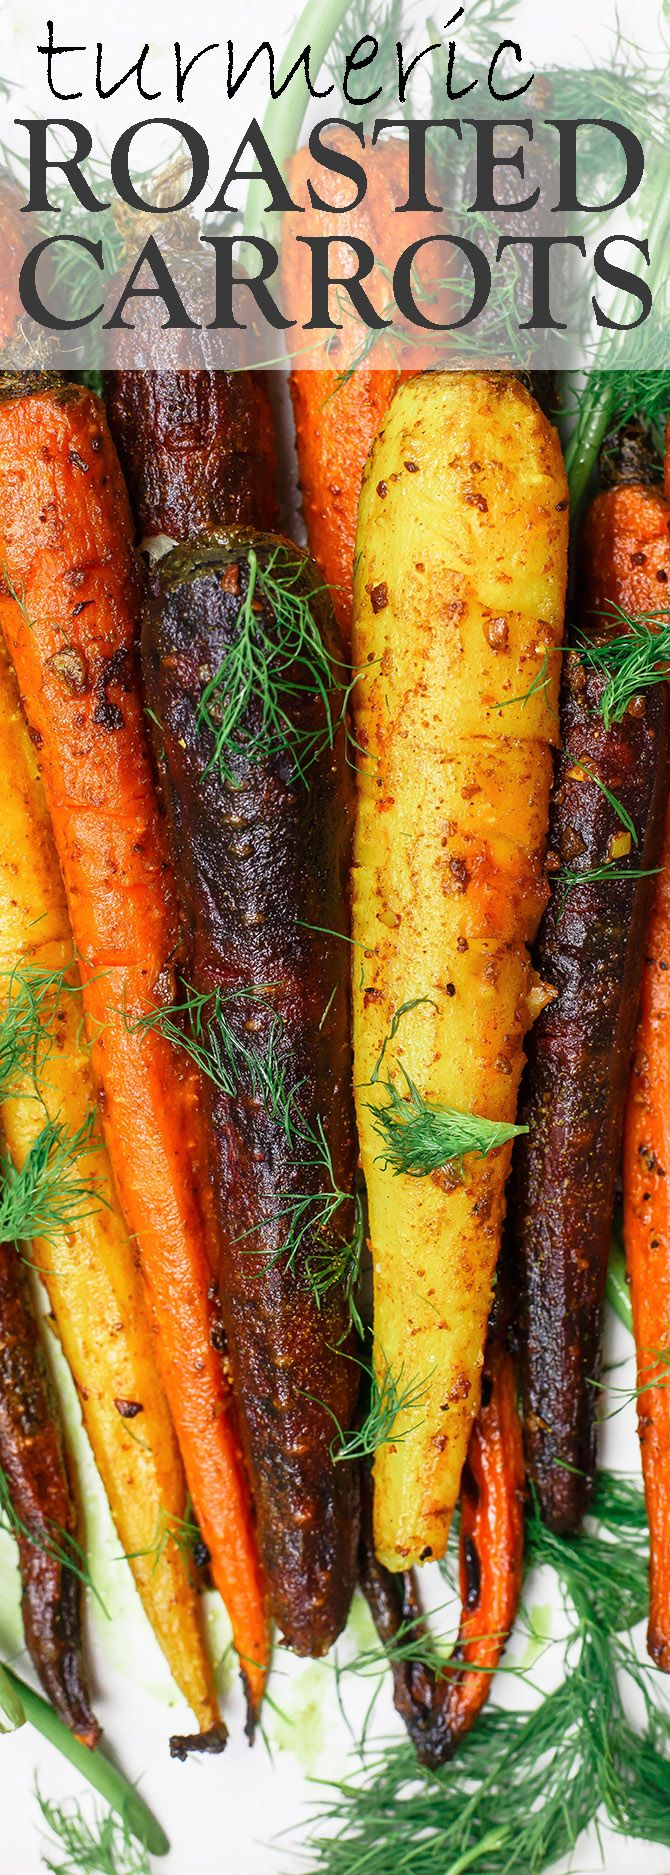 Turmeric Roasted Carrots Recipe   The Mediterranean Dish. A simple side dish of whole roasted carrots prepared the Mediterranean way w/ olive oil, lime juice, garlic and spices like turmeric and cinnamon. A healthy and easy side dish that wins every time! See it on TheMediterraneanDish.com